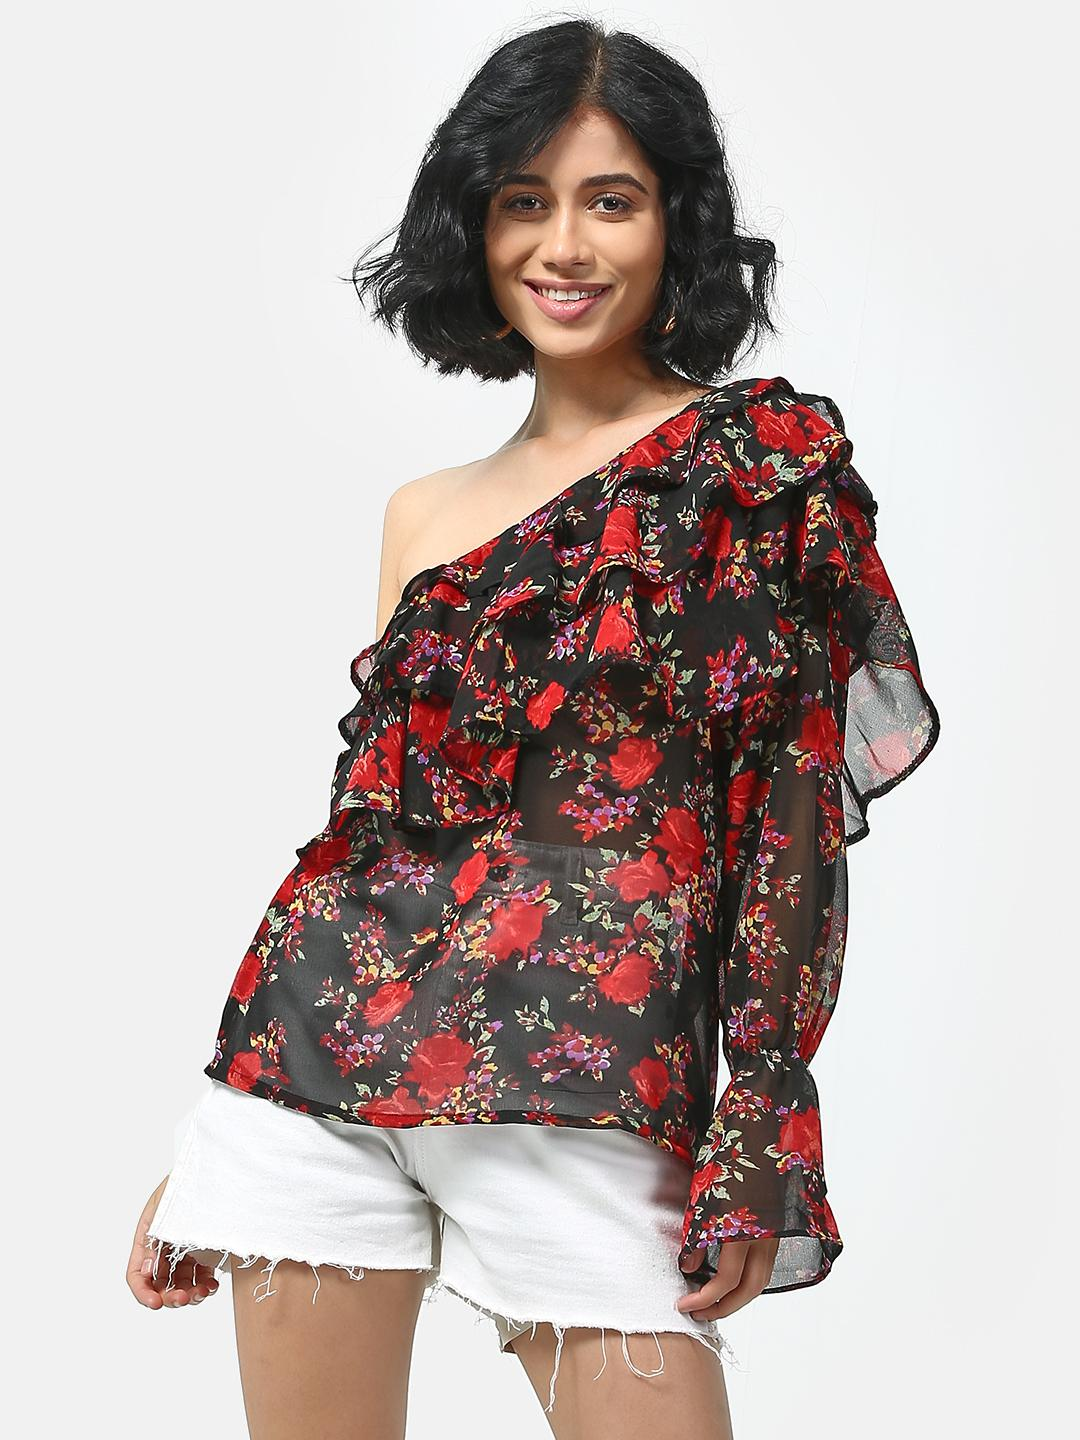 Cation Black Floral Print One Shoulder Top 1